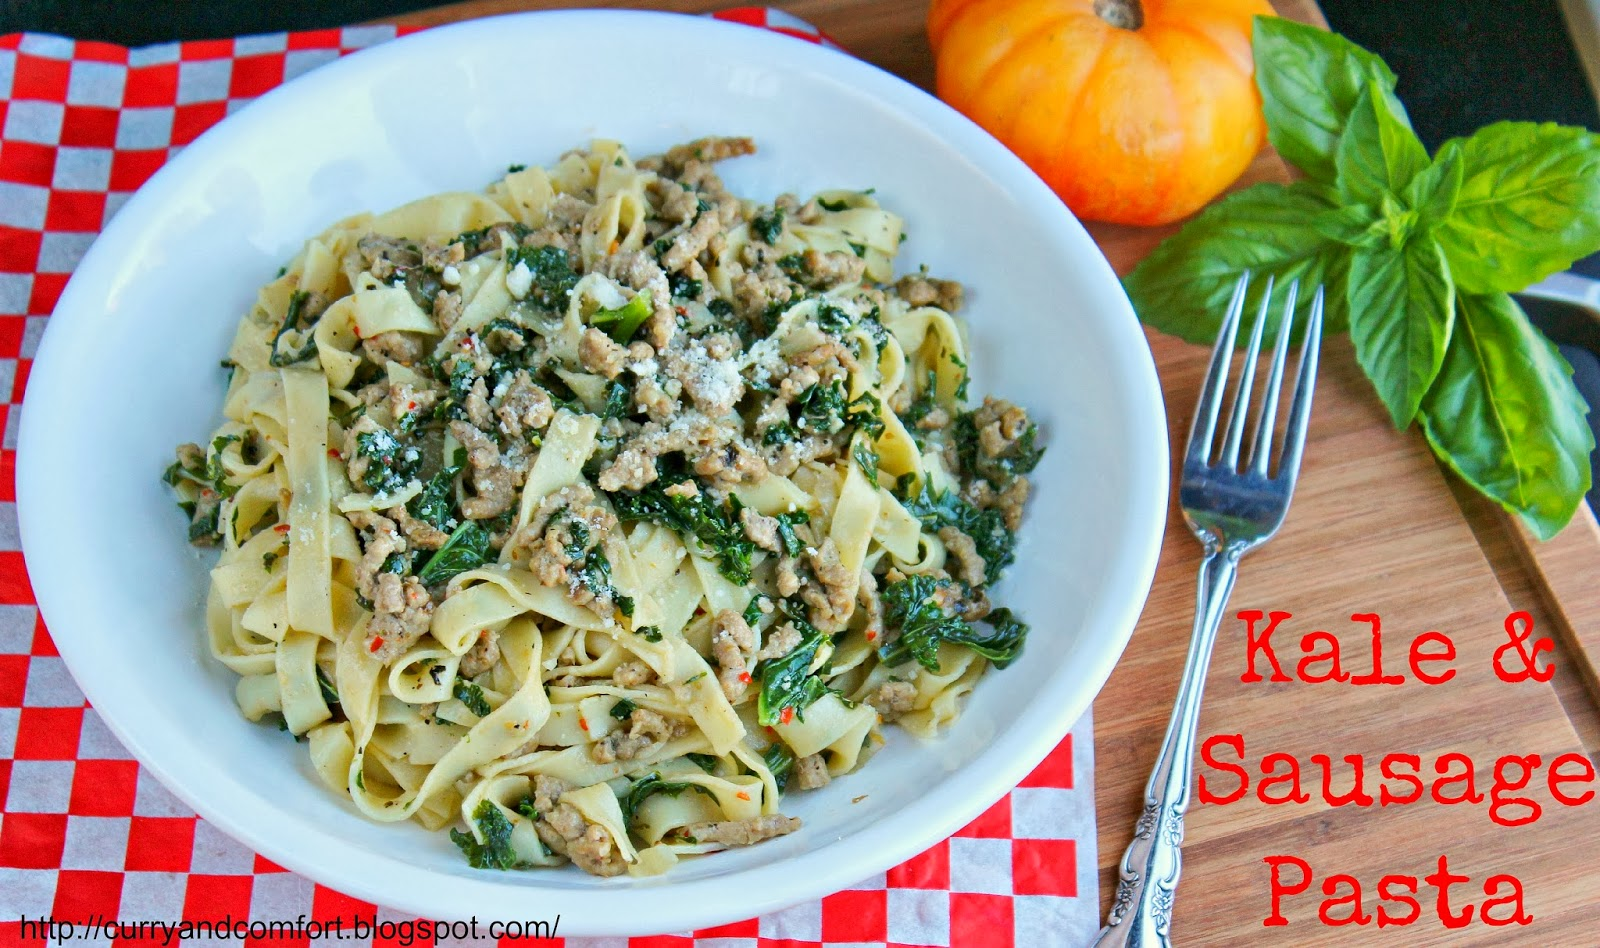 Curry and Comfort: Sausage and Kale Pasta